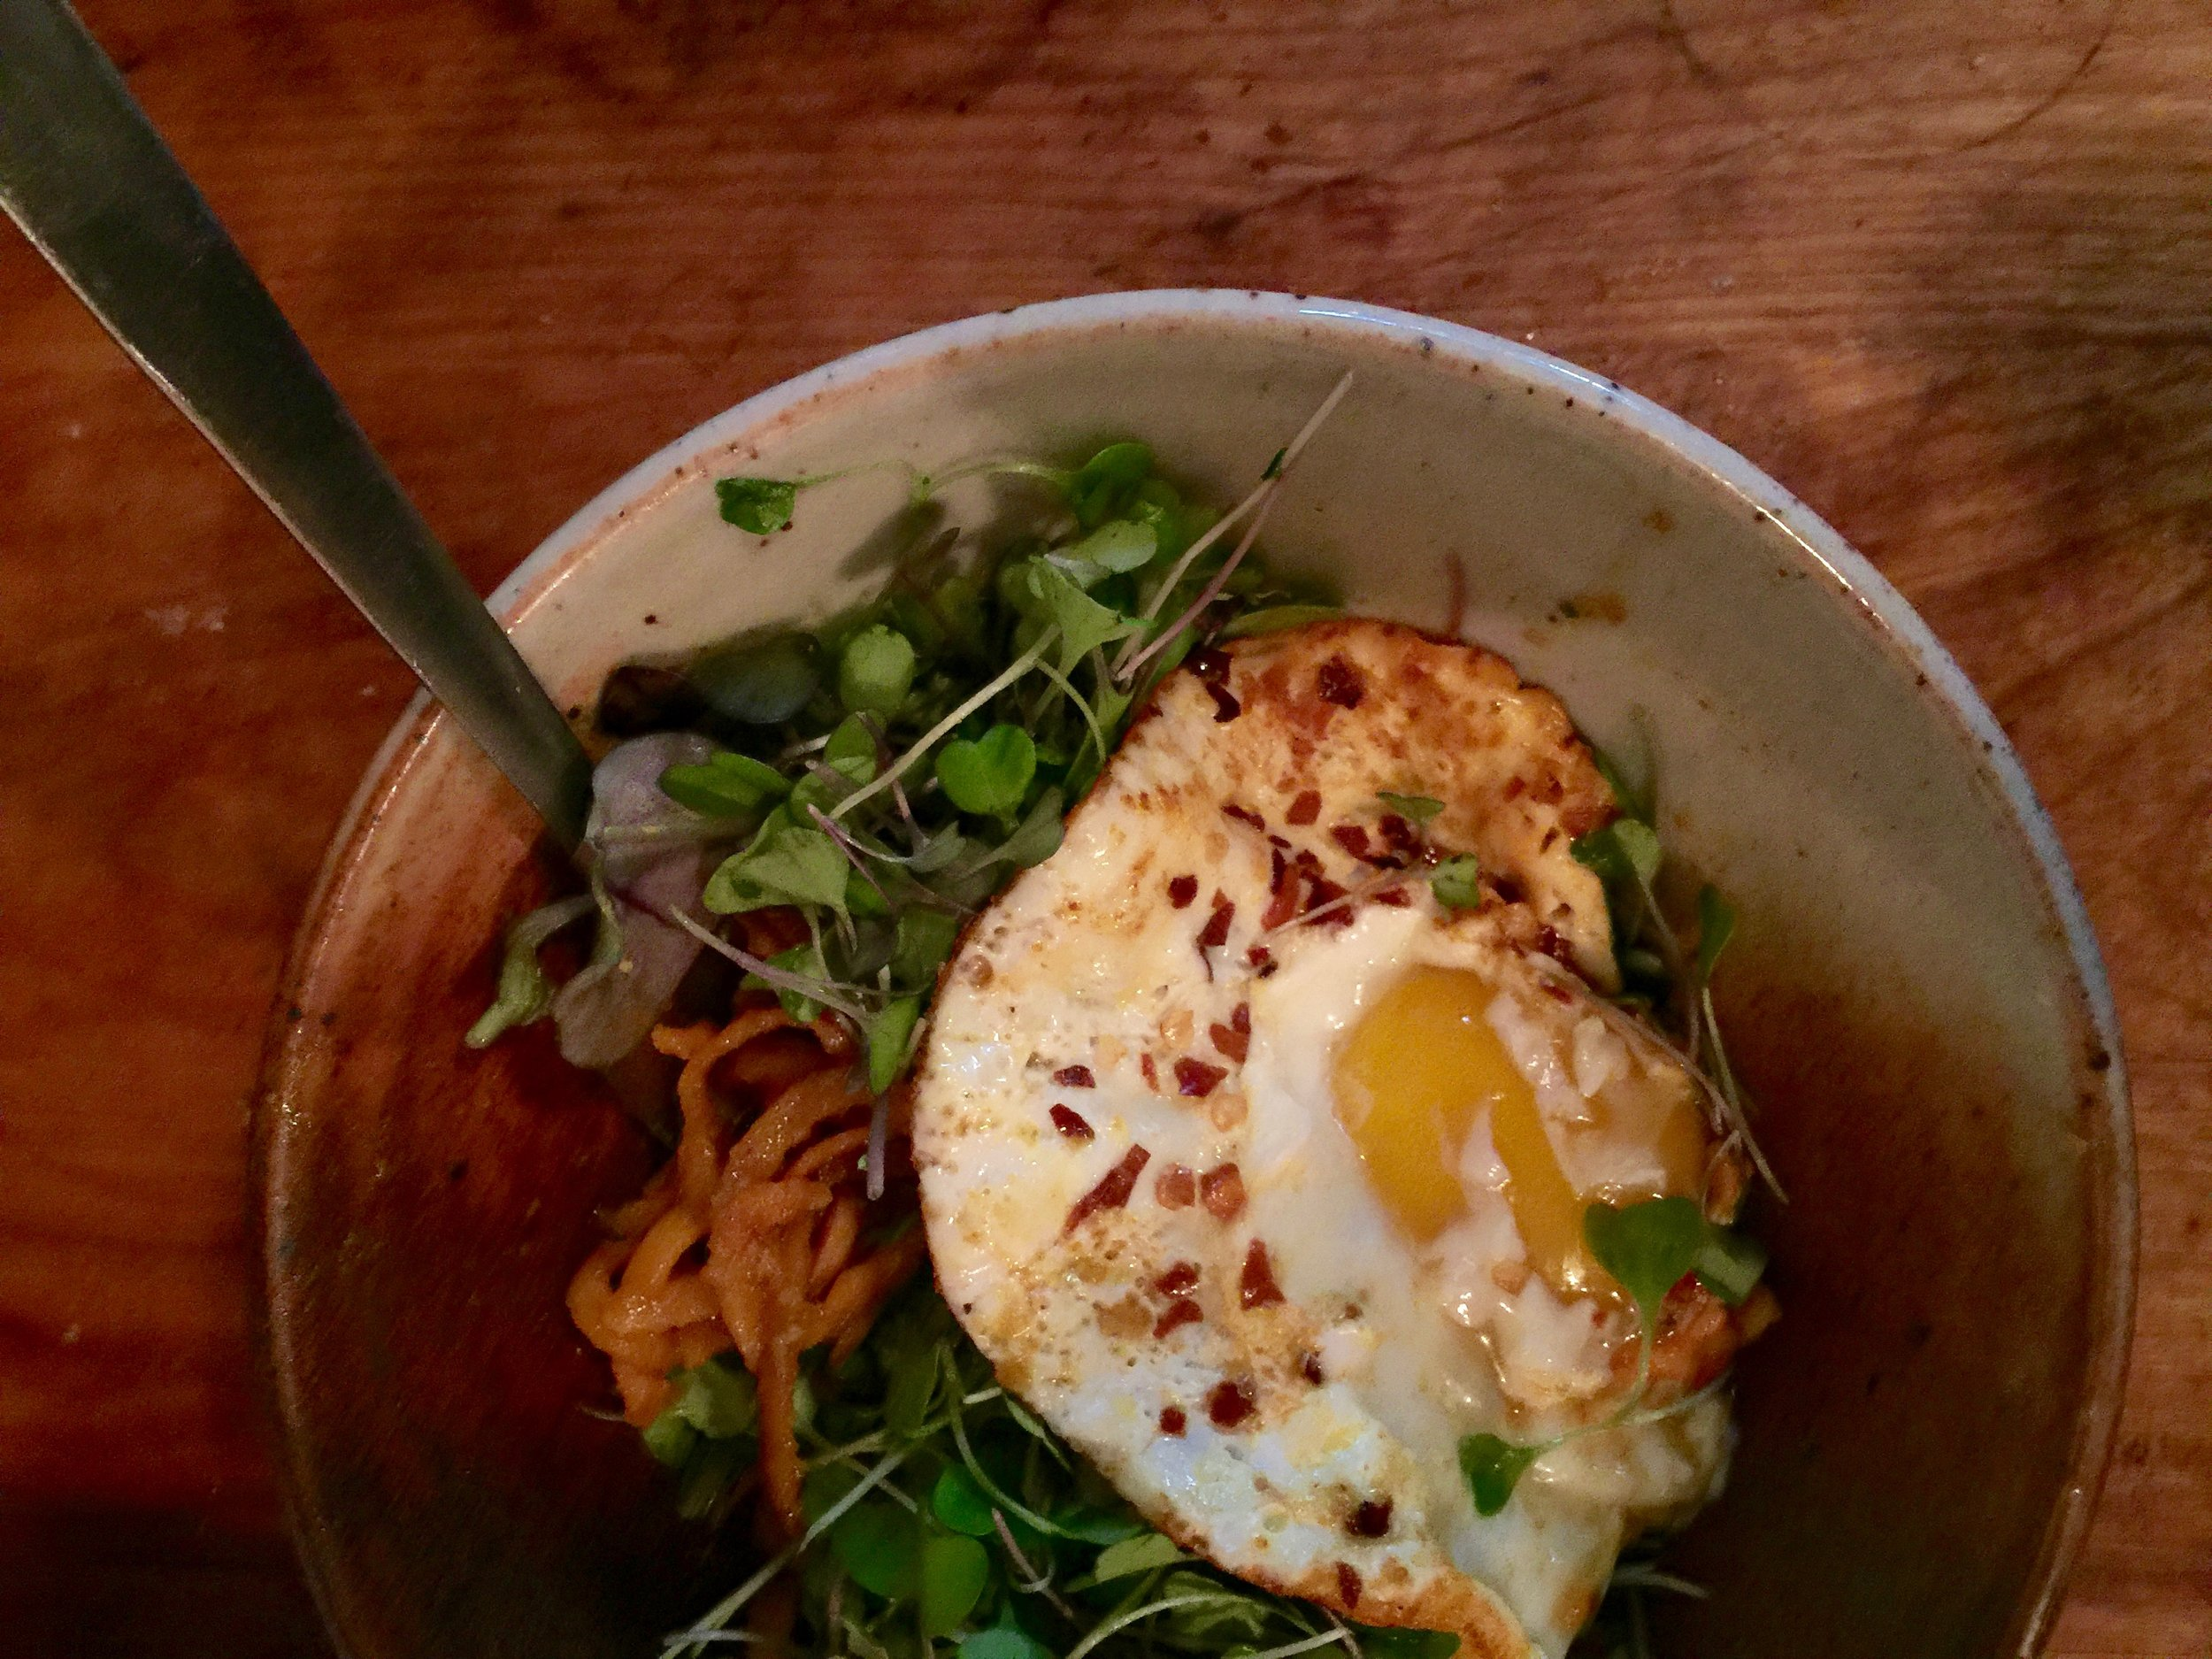 Overeating eggs is a Whole 30 complaint, the key is not scrambling them.